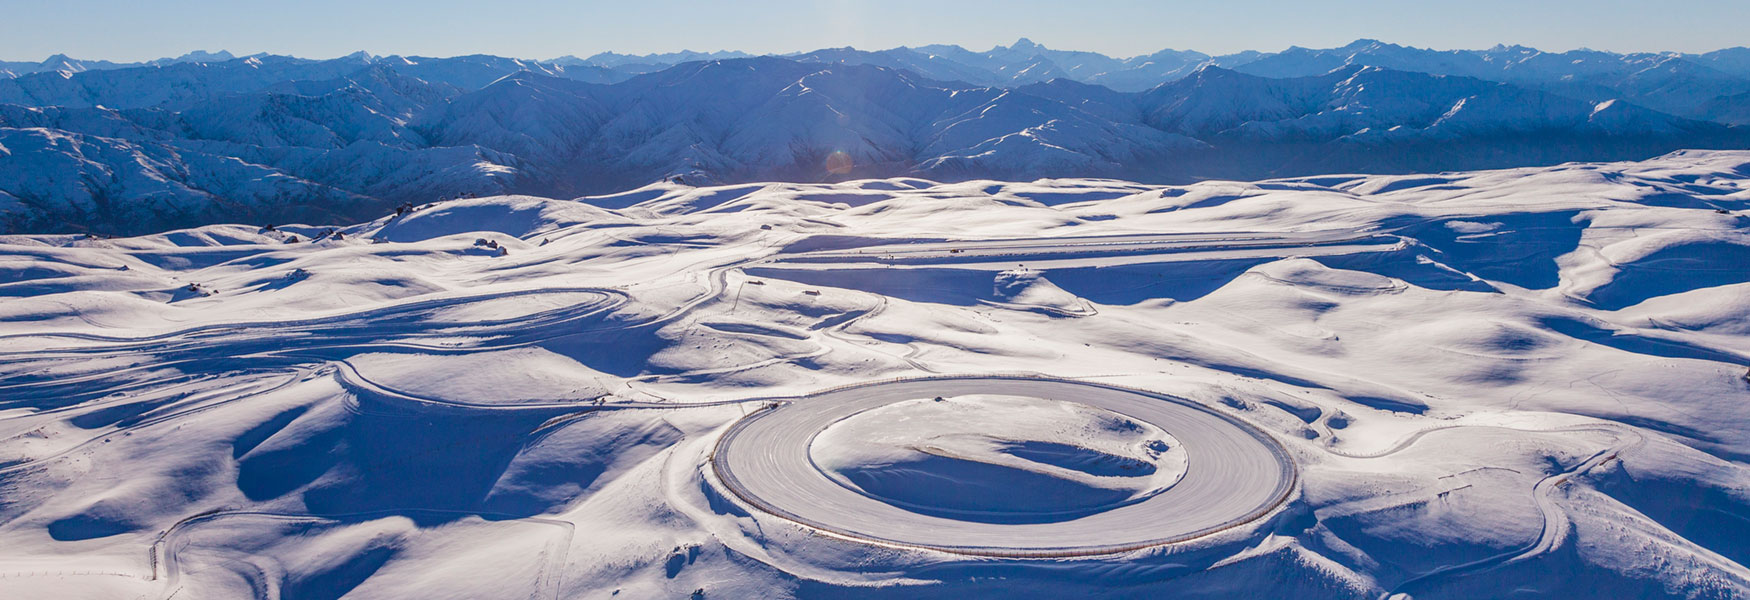 Snow & Ice Circles